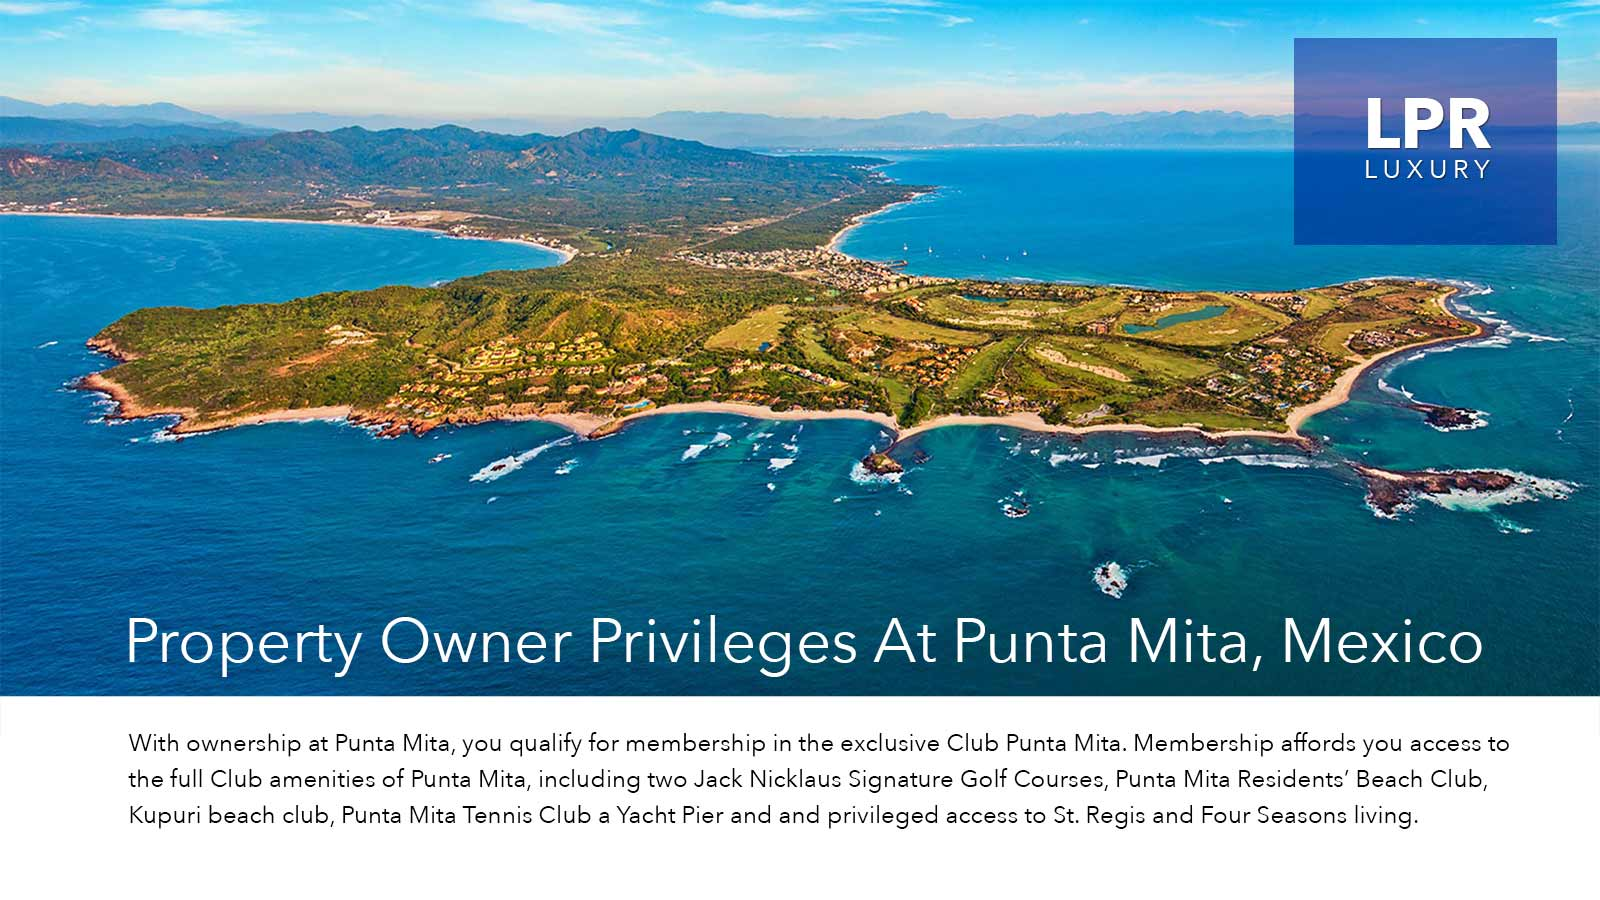 Kupuri - Homes and Homesites at the Punta Mita Resort - Nayarit, Mexico - Punta Mita Real Estate